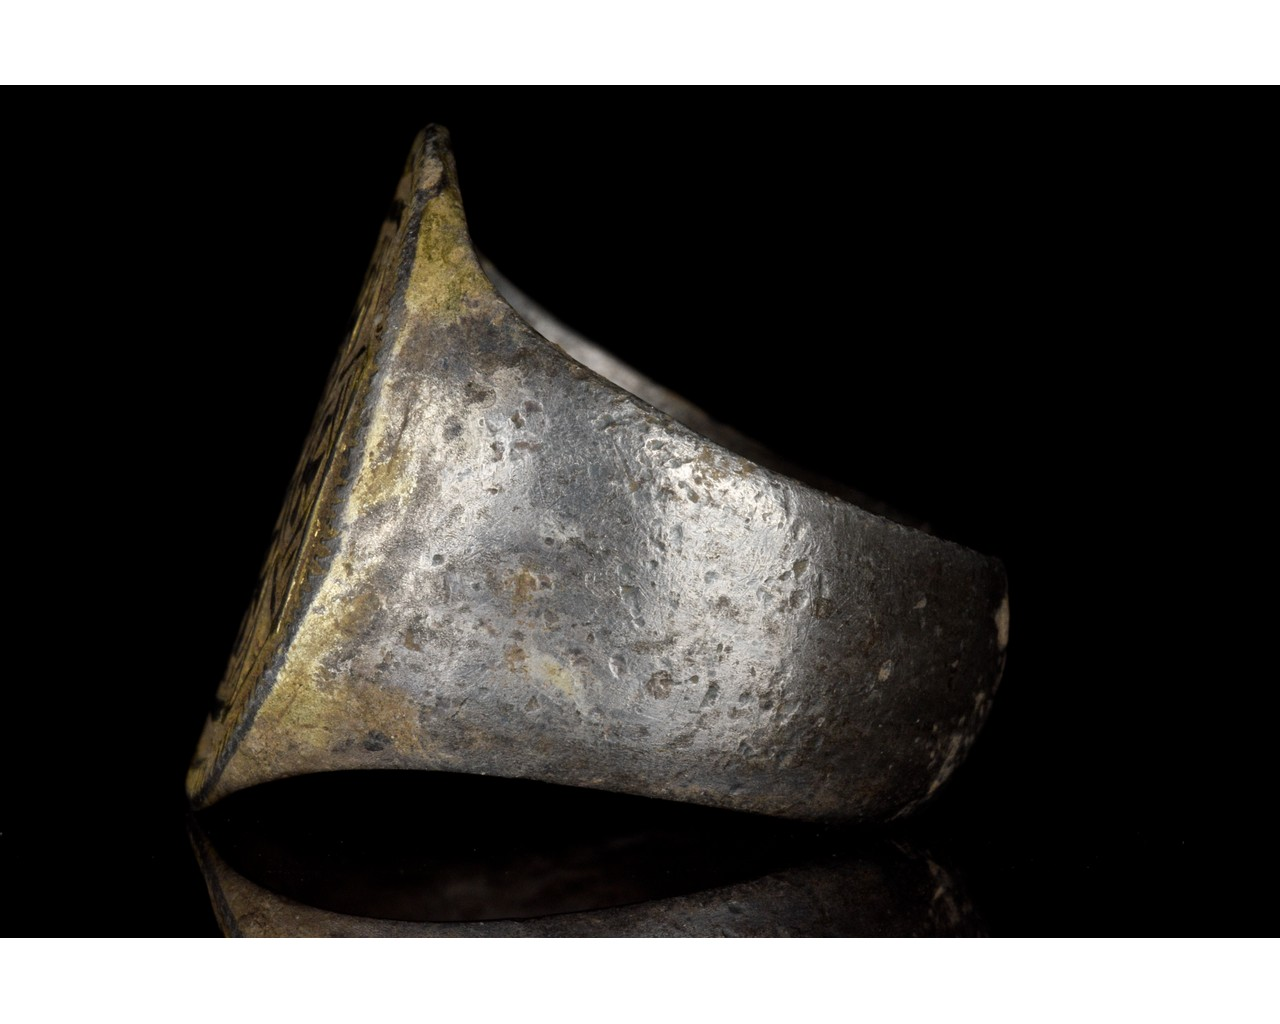 MEDIEVAL SILVER RING WITH MULTIPLE MALTESE CROSSES - Image 3 of 6